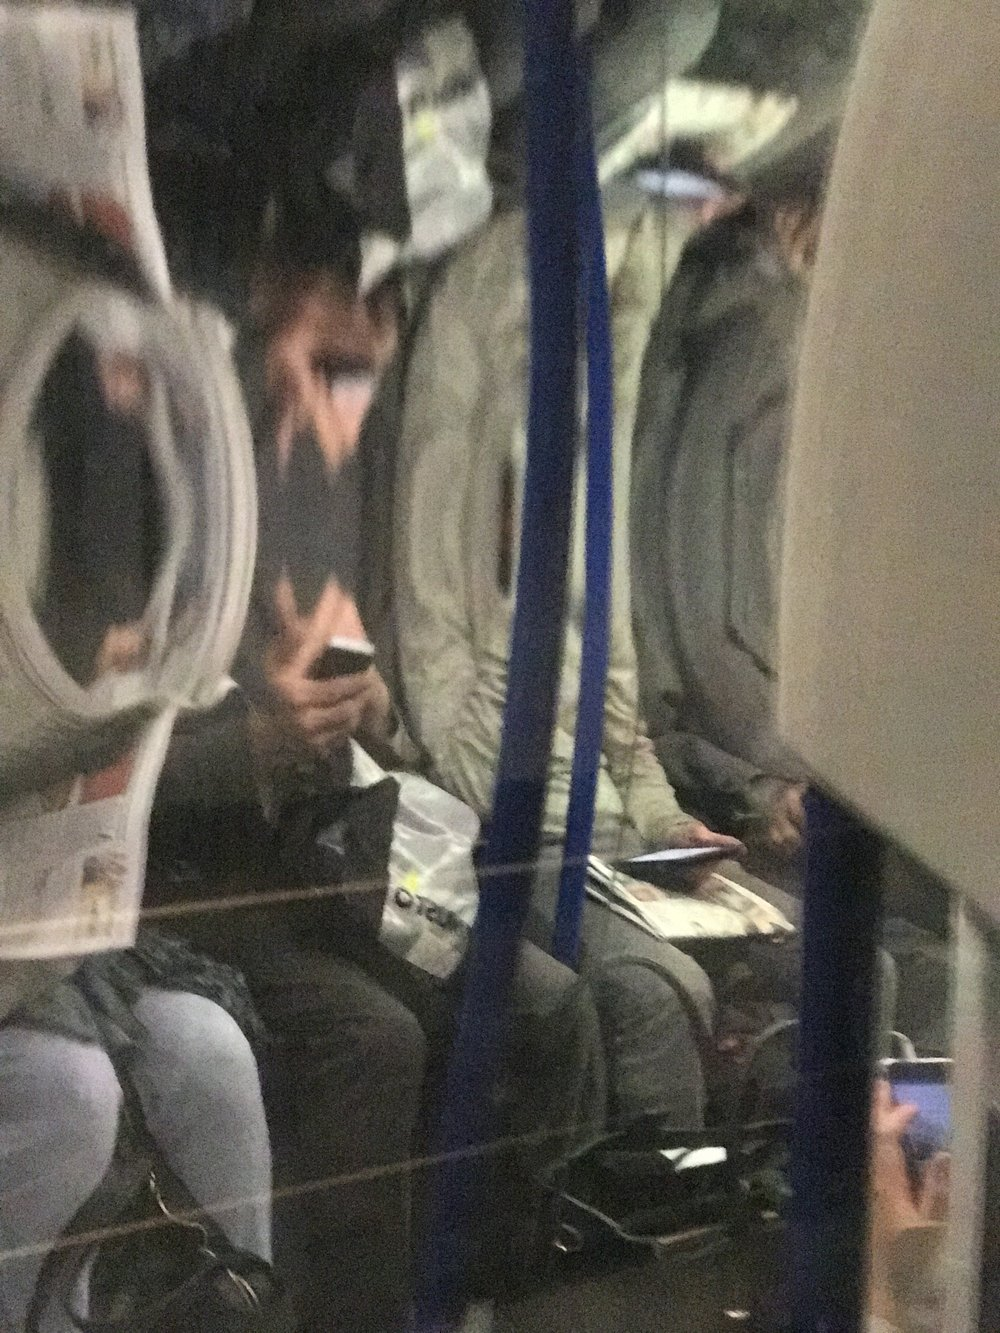 London_Tube_Train_Window.jpg